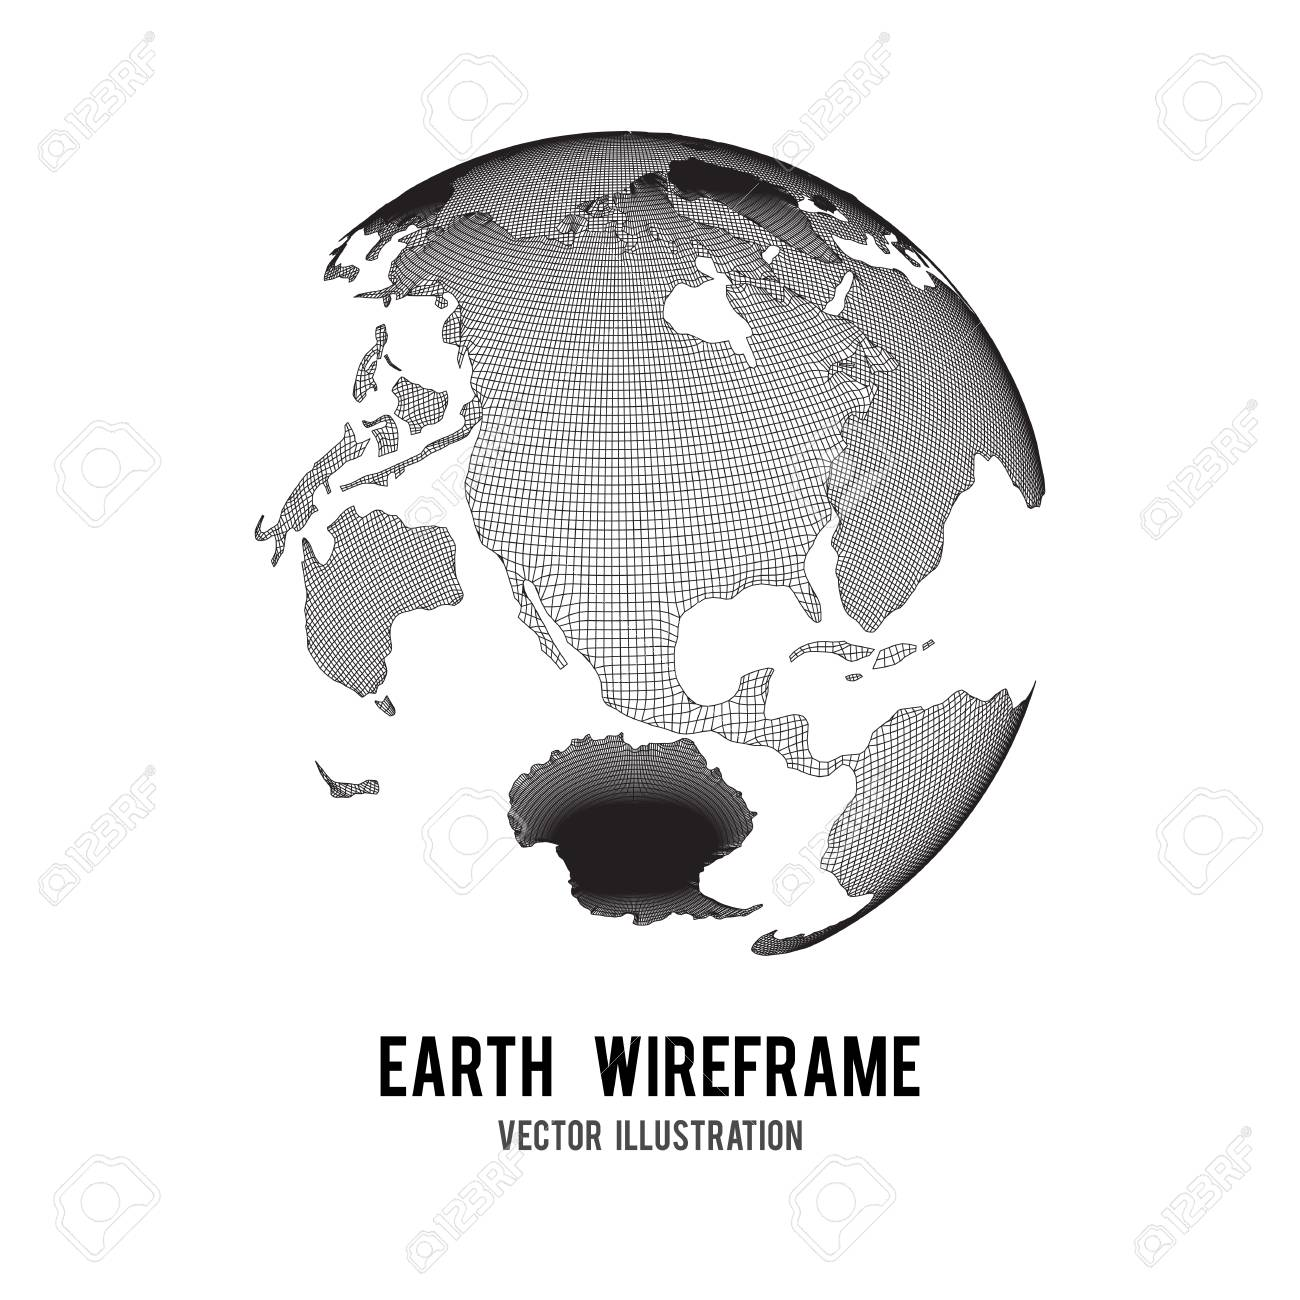 Wire Frame Planet Earth Globe Royalty Free Cliparts, Vectors, And ...